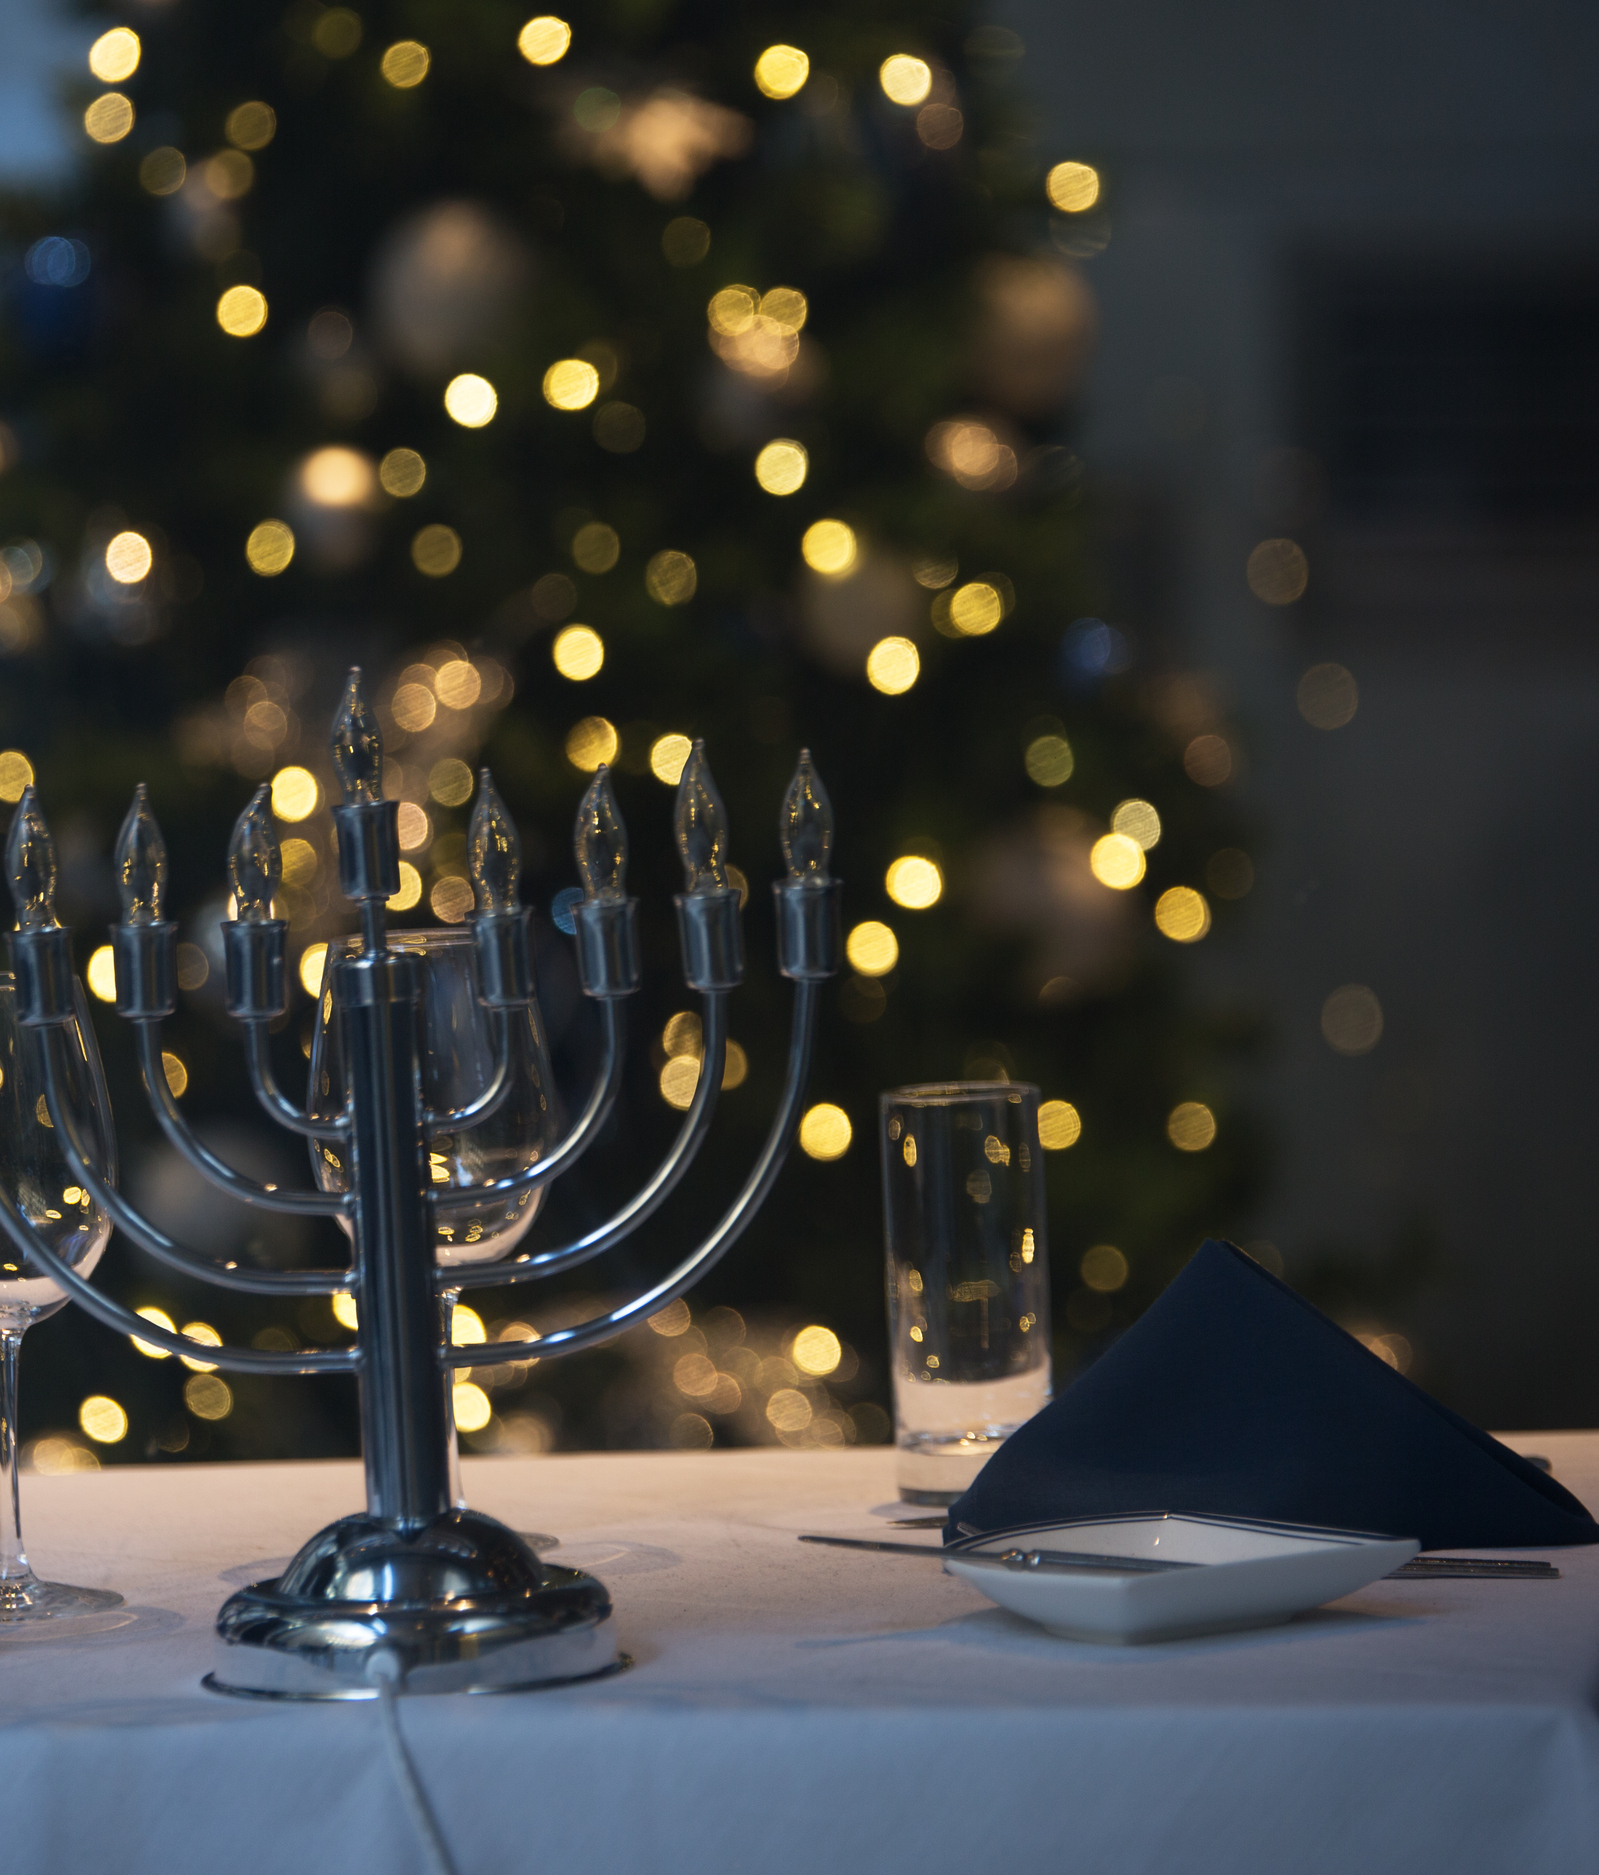 Jewish Values And Heritage Are Not Lost By Having A Christmas Tree